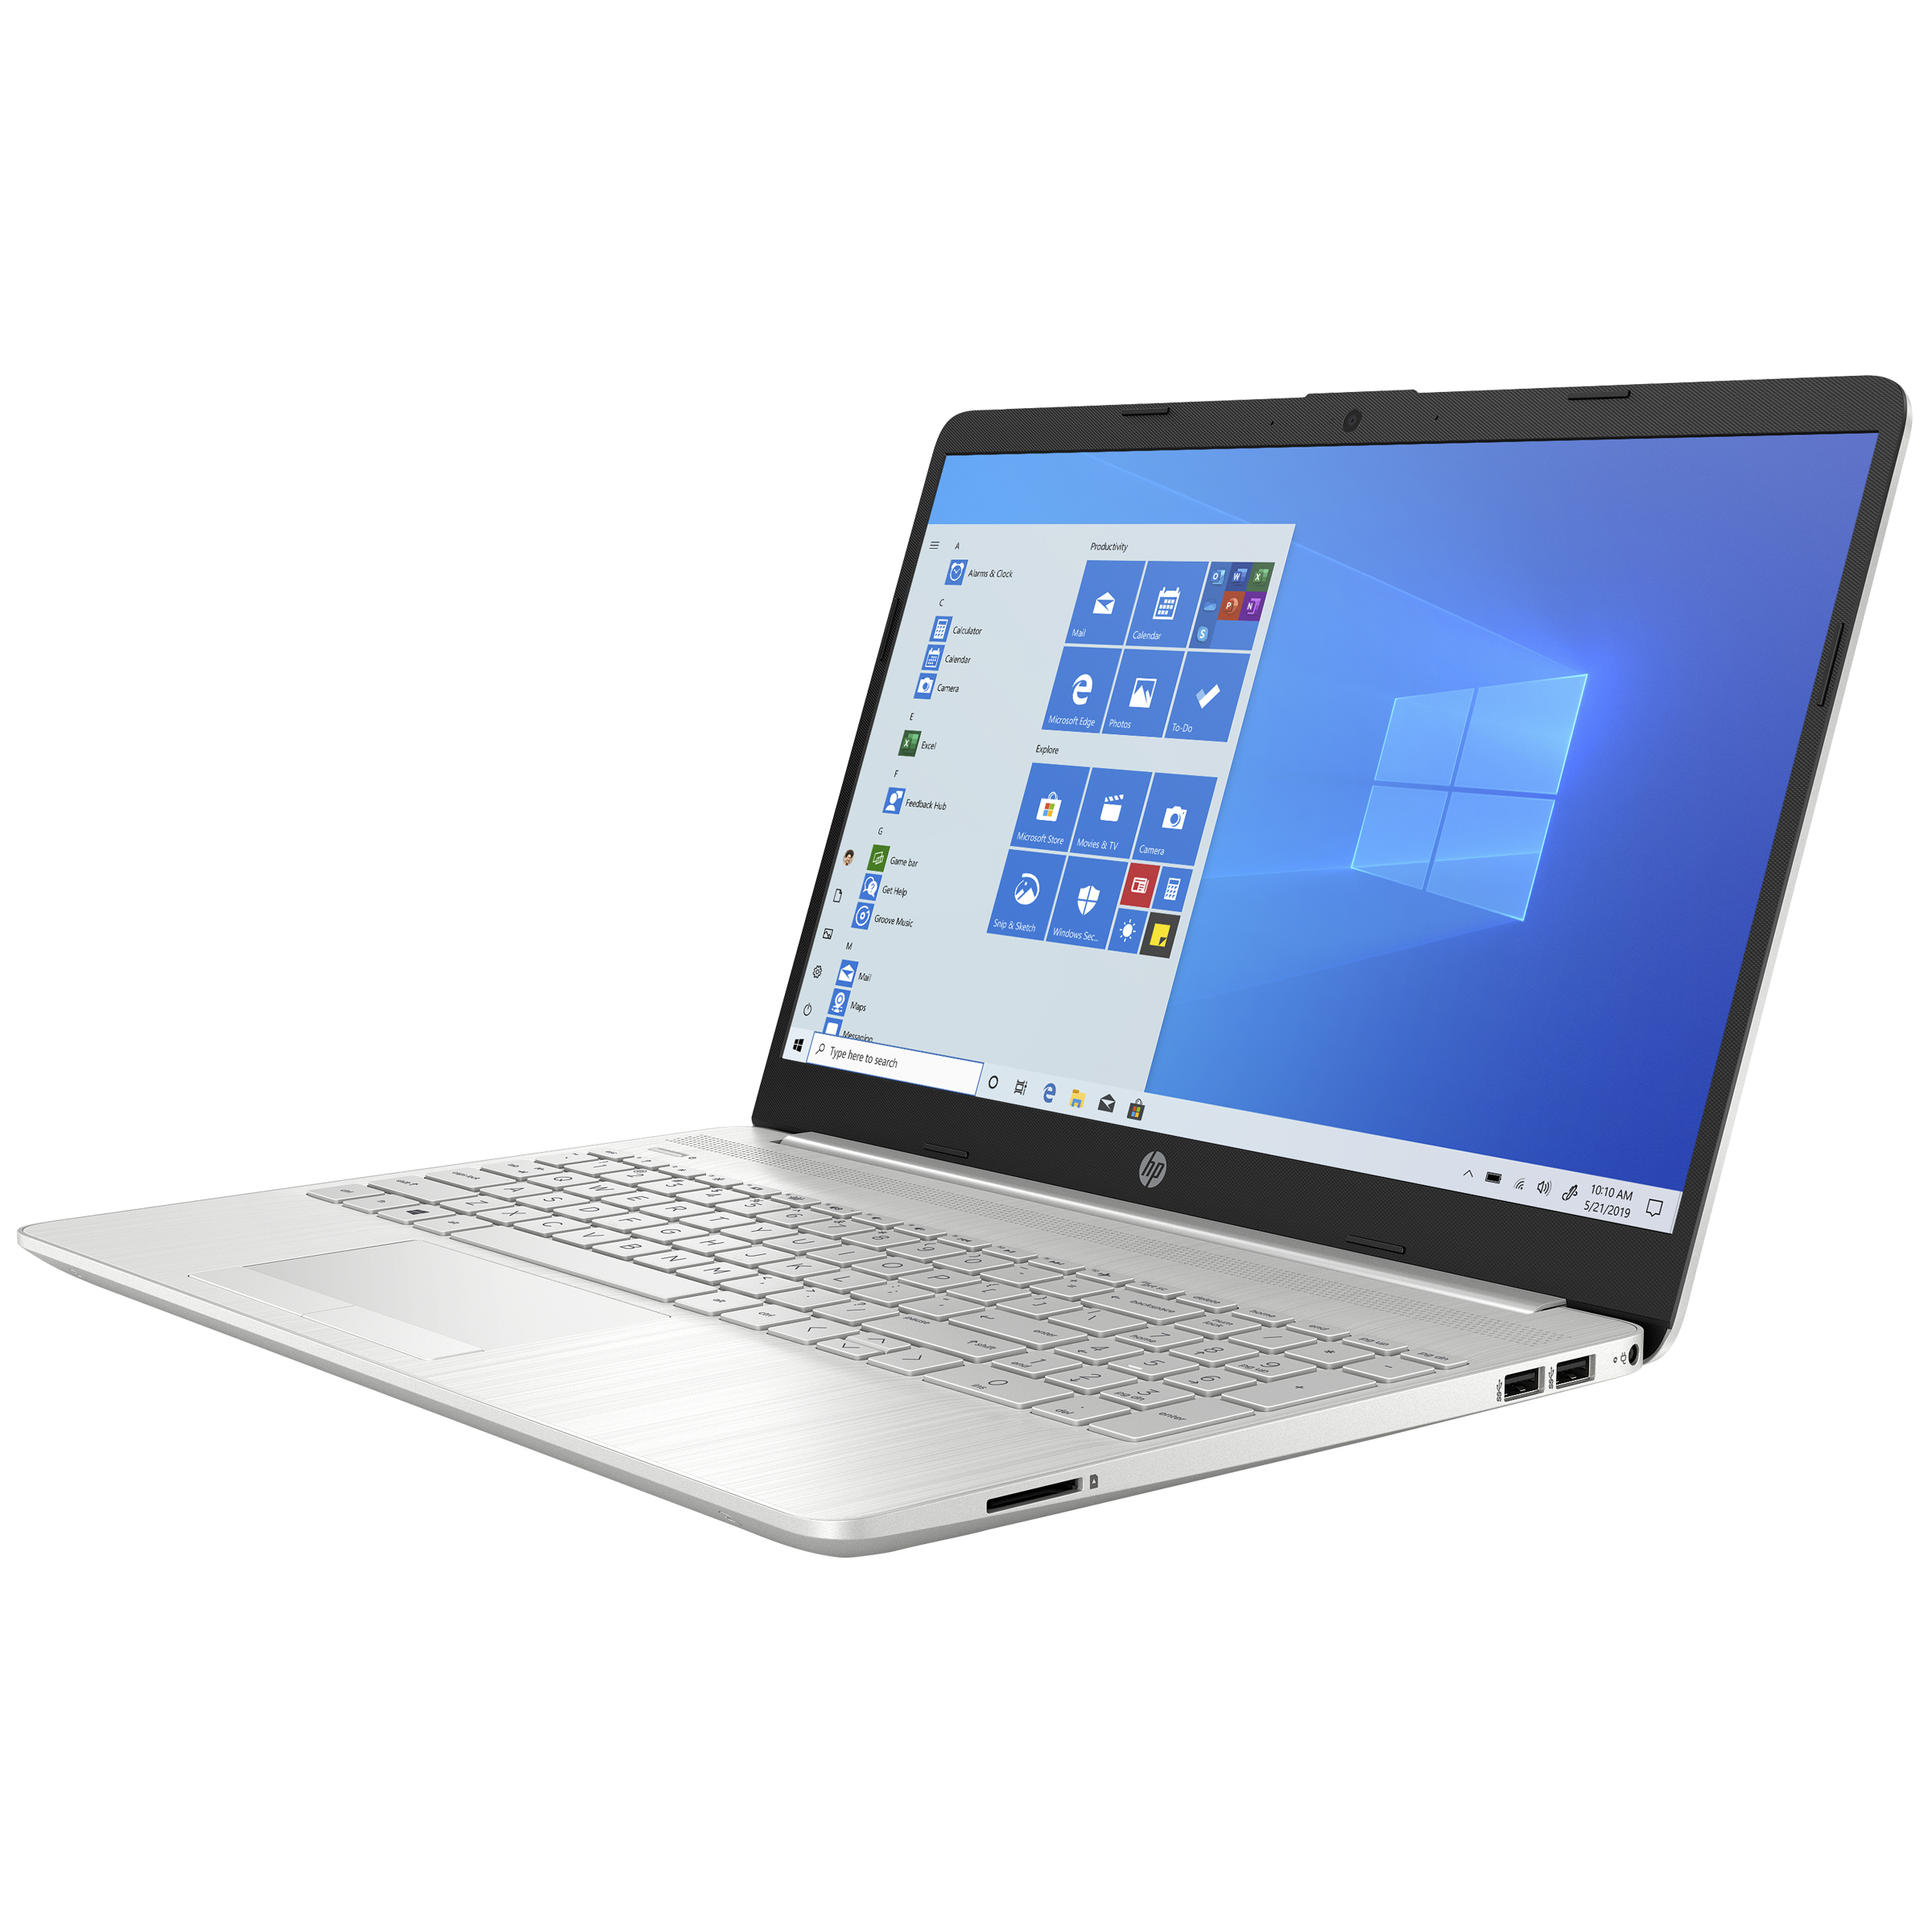 HP 15s-dr3001TU (34W43PA#ACJ) Core i3 11th Gen Windows 10 Home Thin and Light Laptop (8GB RAM, 1TB HDD, Intel UHD Graphics, 39.6cm, Natural Silver) 3